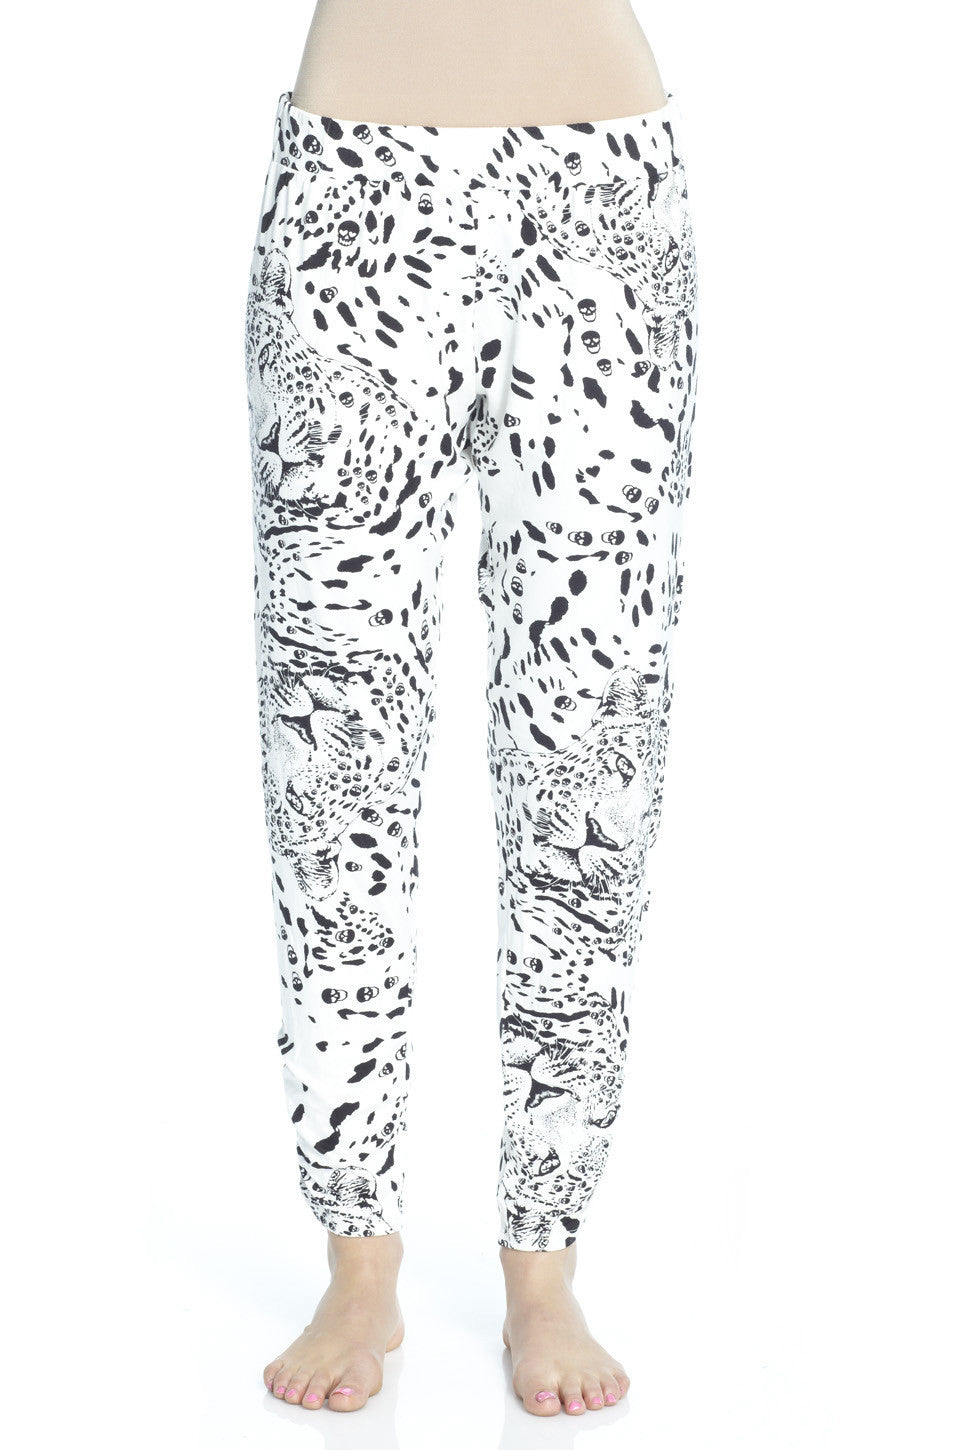 Mimi Leopard Print Pant with Sheering FINAL SALE - Lauren Moshi - 1